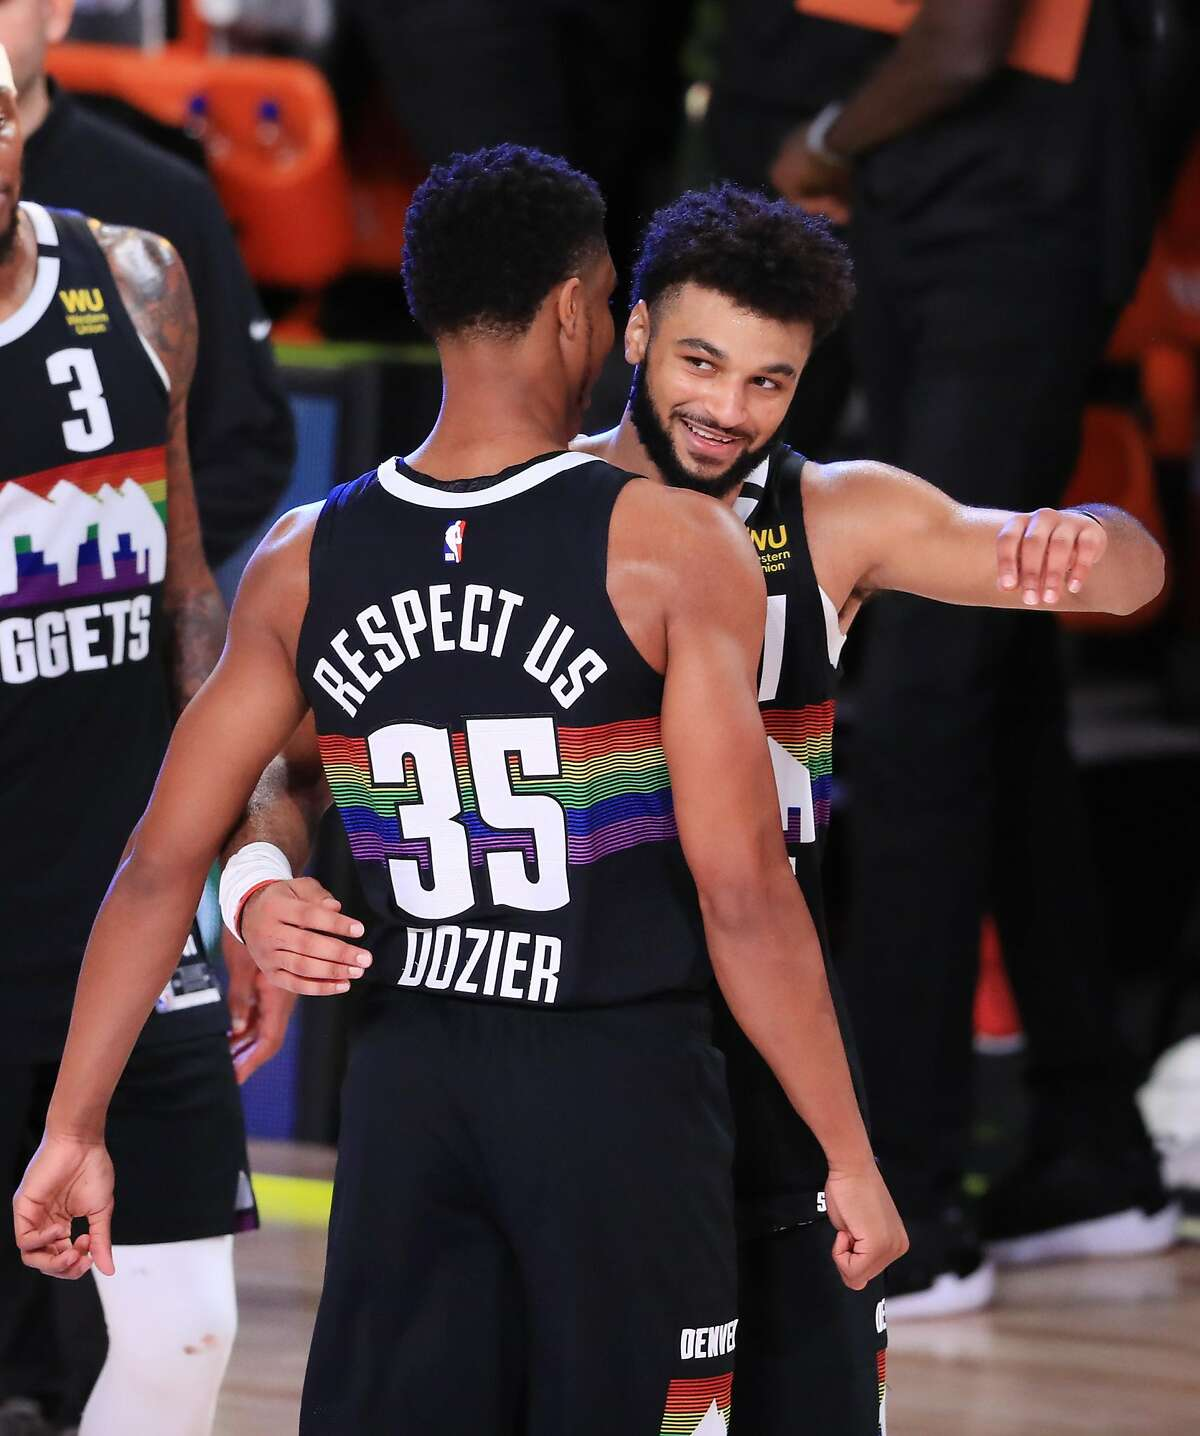 LAKE BUENA VISTA, FLORIDA - SEPTEMBER 13: Jamal Murray #27 of the Denver Nuggets reacts with PJ Dozier #35 of the Denver Nuggets during the fourth quarter against the LA Clippers in Game Six of the Western Conference Second Round during the 2020 NBA Playoffs at AdventHealth Arena at the ESPN Wide World Of Sports Complex on September 12, 2020 in Lake Buena Vista, Florida. NOTE TO USER: User expressly acknowledges and agrees that, by downloading and or using this photograph, User is consenting to the terms and conditions of the Getty Images License Agreement. (Photo by Michael Reaves/Getty Images)